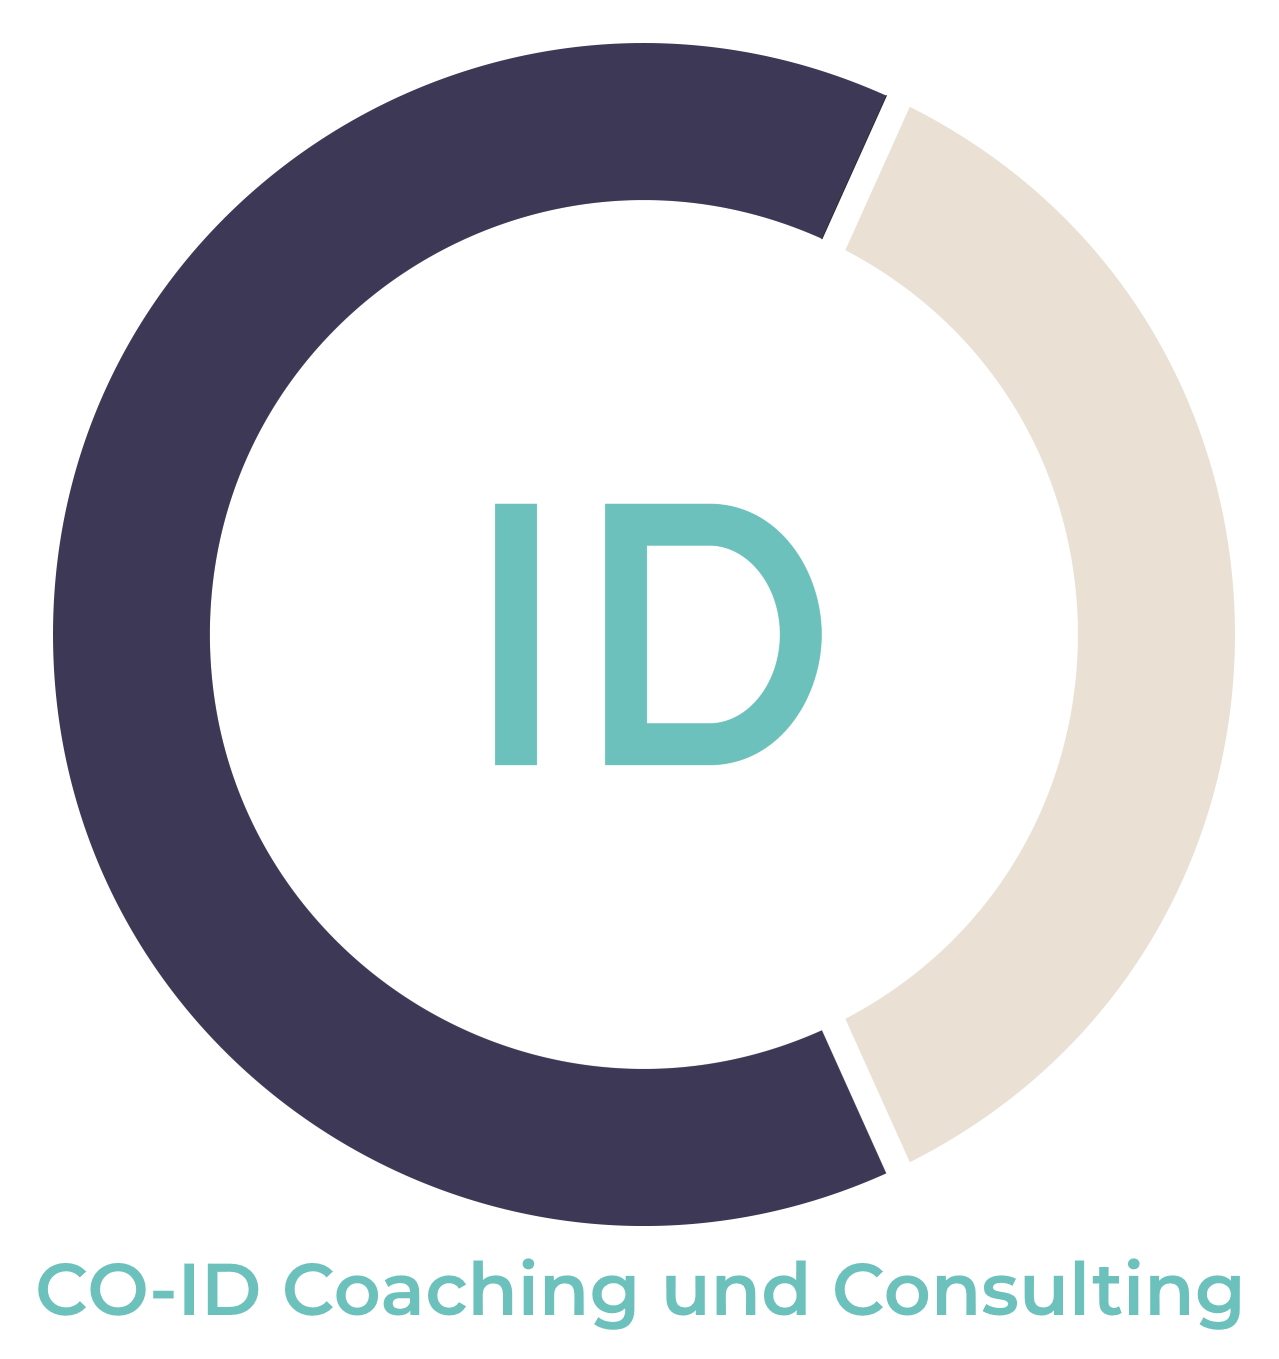 CO-ID Coaching und Consulting